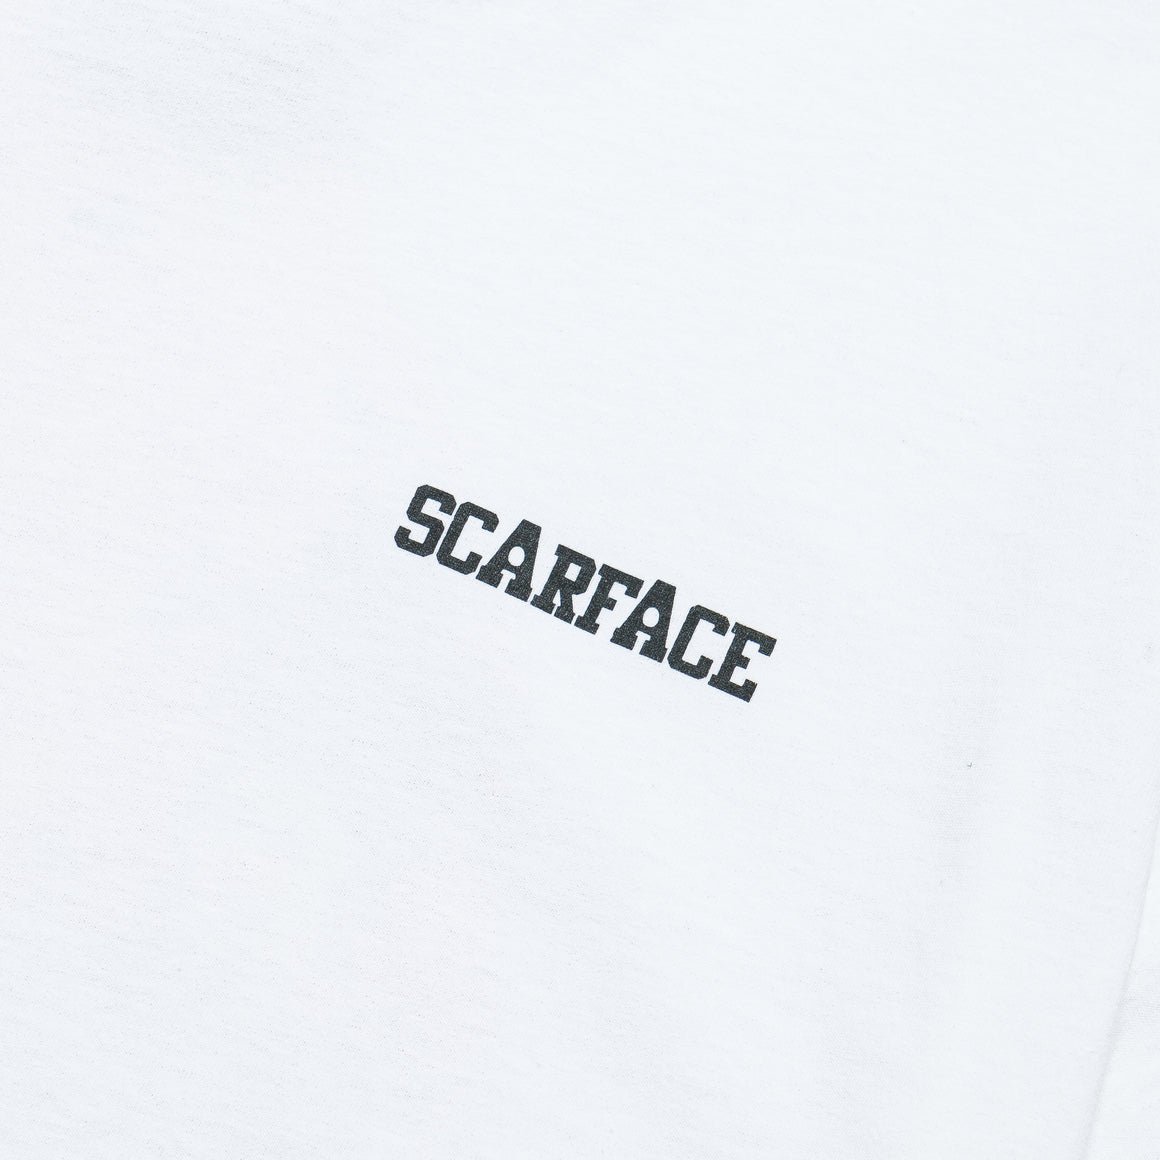 For The Homies - Scarface T-Shirt - White - Up There